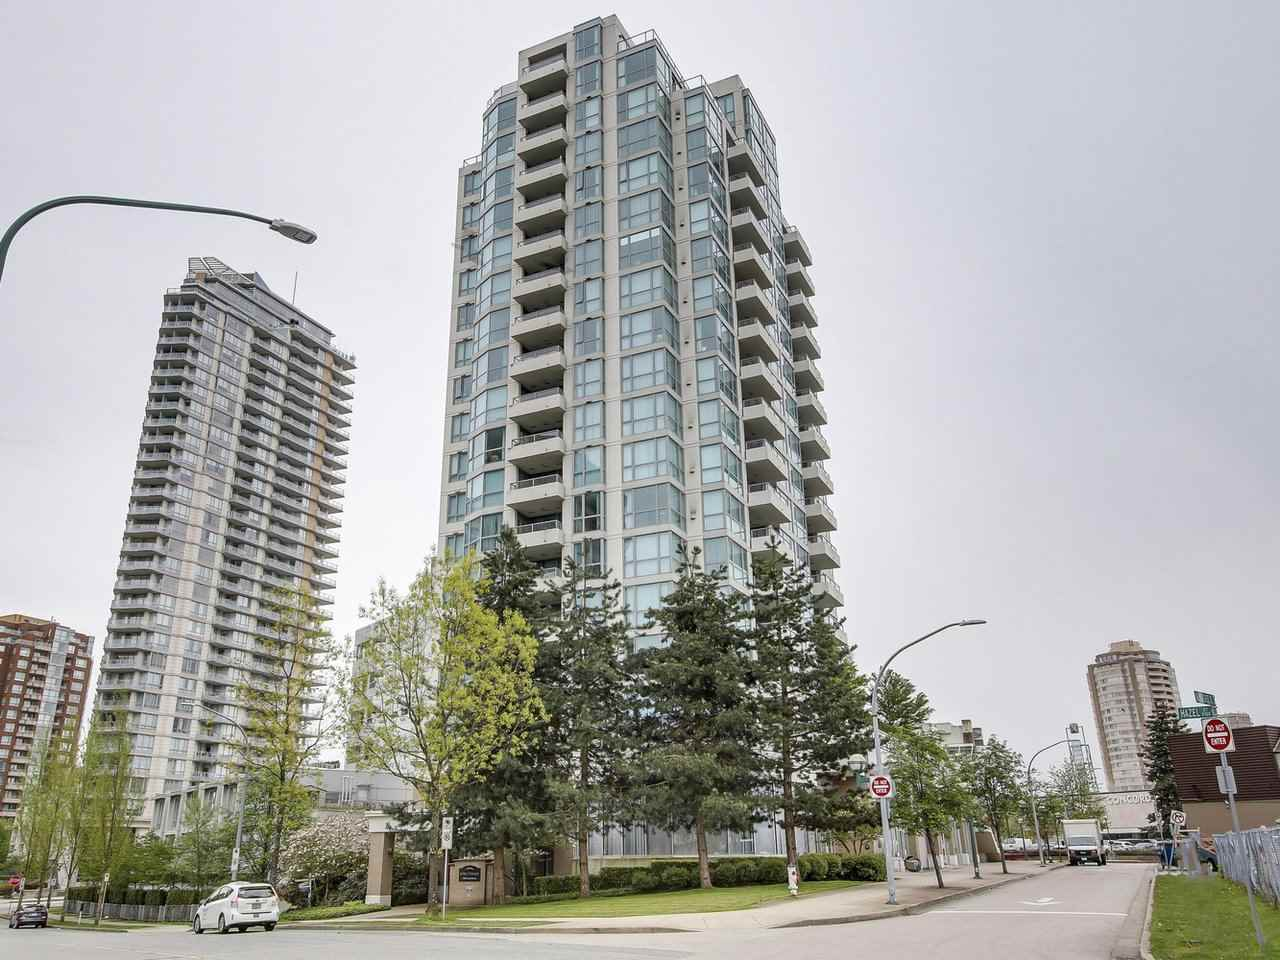 Condo Apartment at 1701 4788 HAZEL STREET, Unit 1701, Burnaby South, British Columbia. Image 1